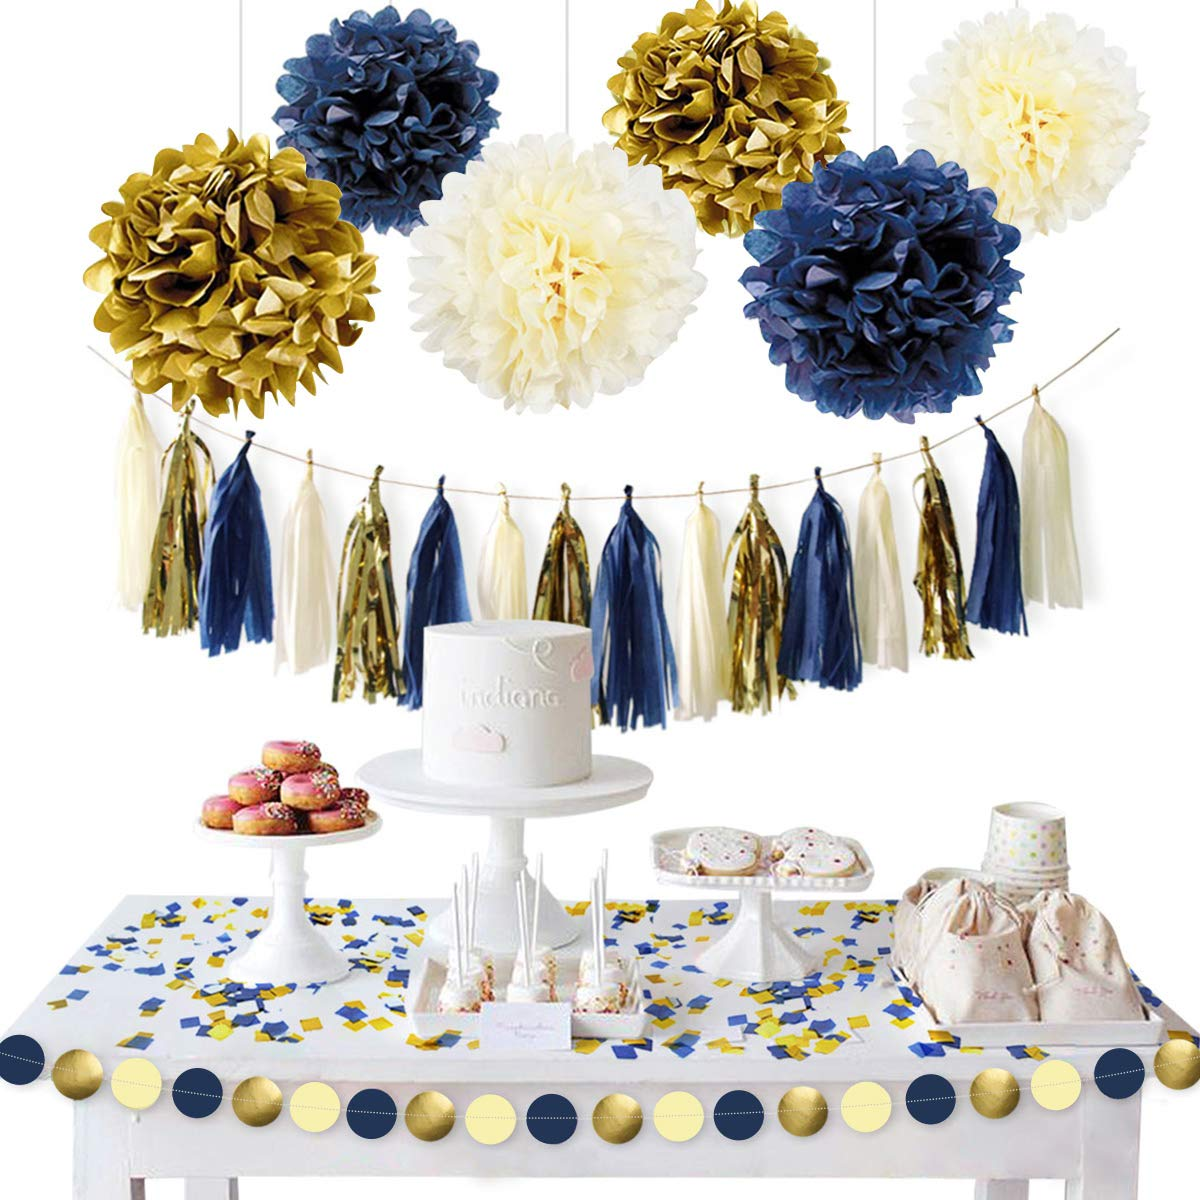 NICROLANDEE Navy Blue Gold Party Decoration Kit Nautical Baby Shower Hanging Pom Poms Paper Garland Party Confetti for Get Ready Bridal Shower Wedding Birthday Bachelorette (Navy Gold) by NICROLANDEE